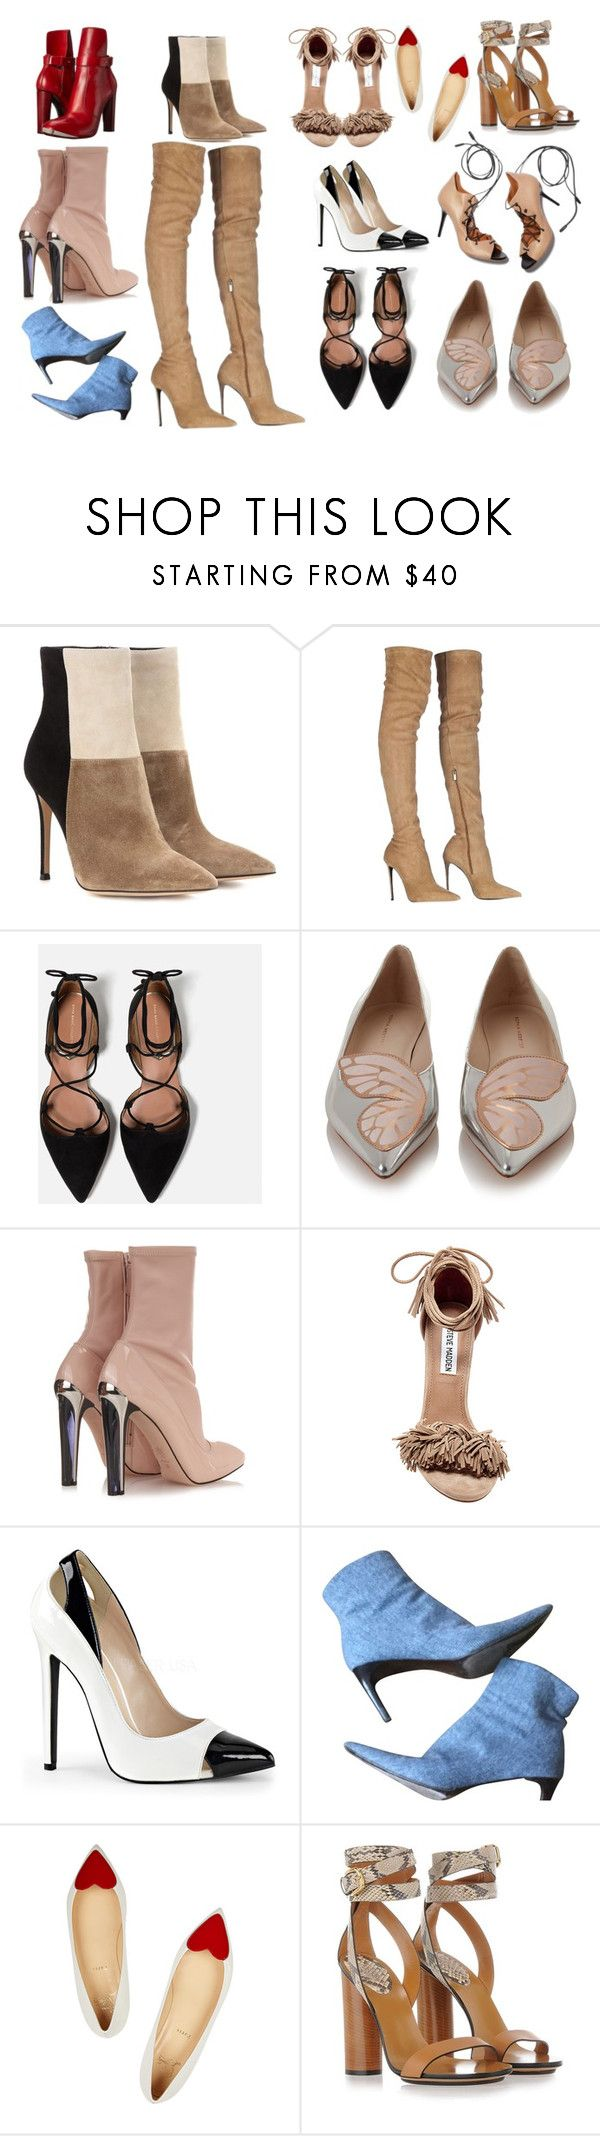 """""""Shoes"""" by theclothesmind on Polyvore featuring Gianvito Rossi, Roberto Cavalli, Zara, Sophia Webster, Alexander McQueen, Steve Madden, Malone Souliers, Ralph Lauren, Christian Louboutin and Gucci"""